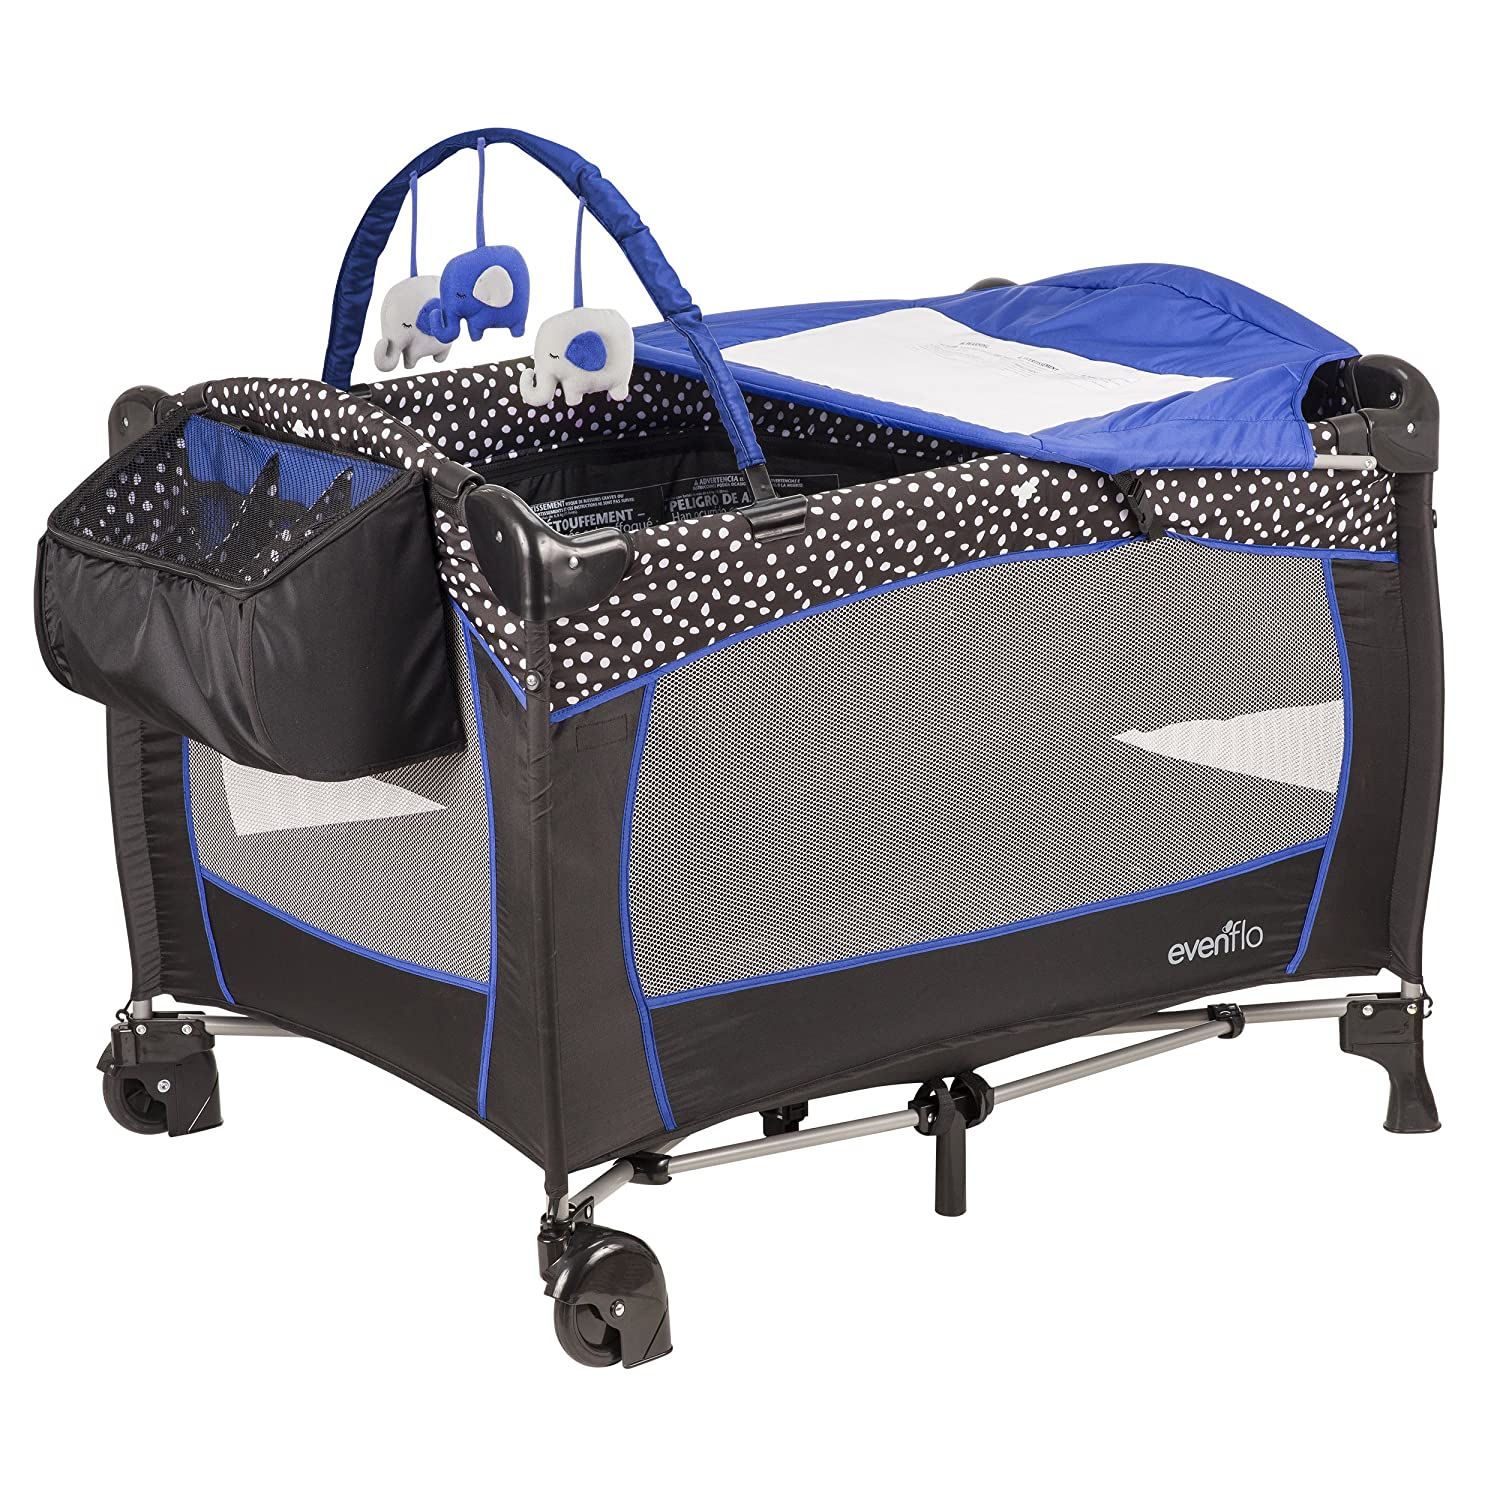 Evenflo Portable Baby Suite Deluxe Hayden Dot 70211874